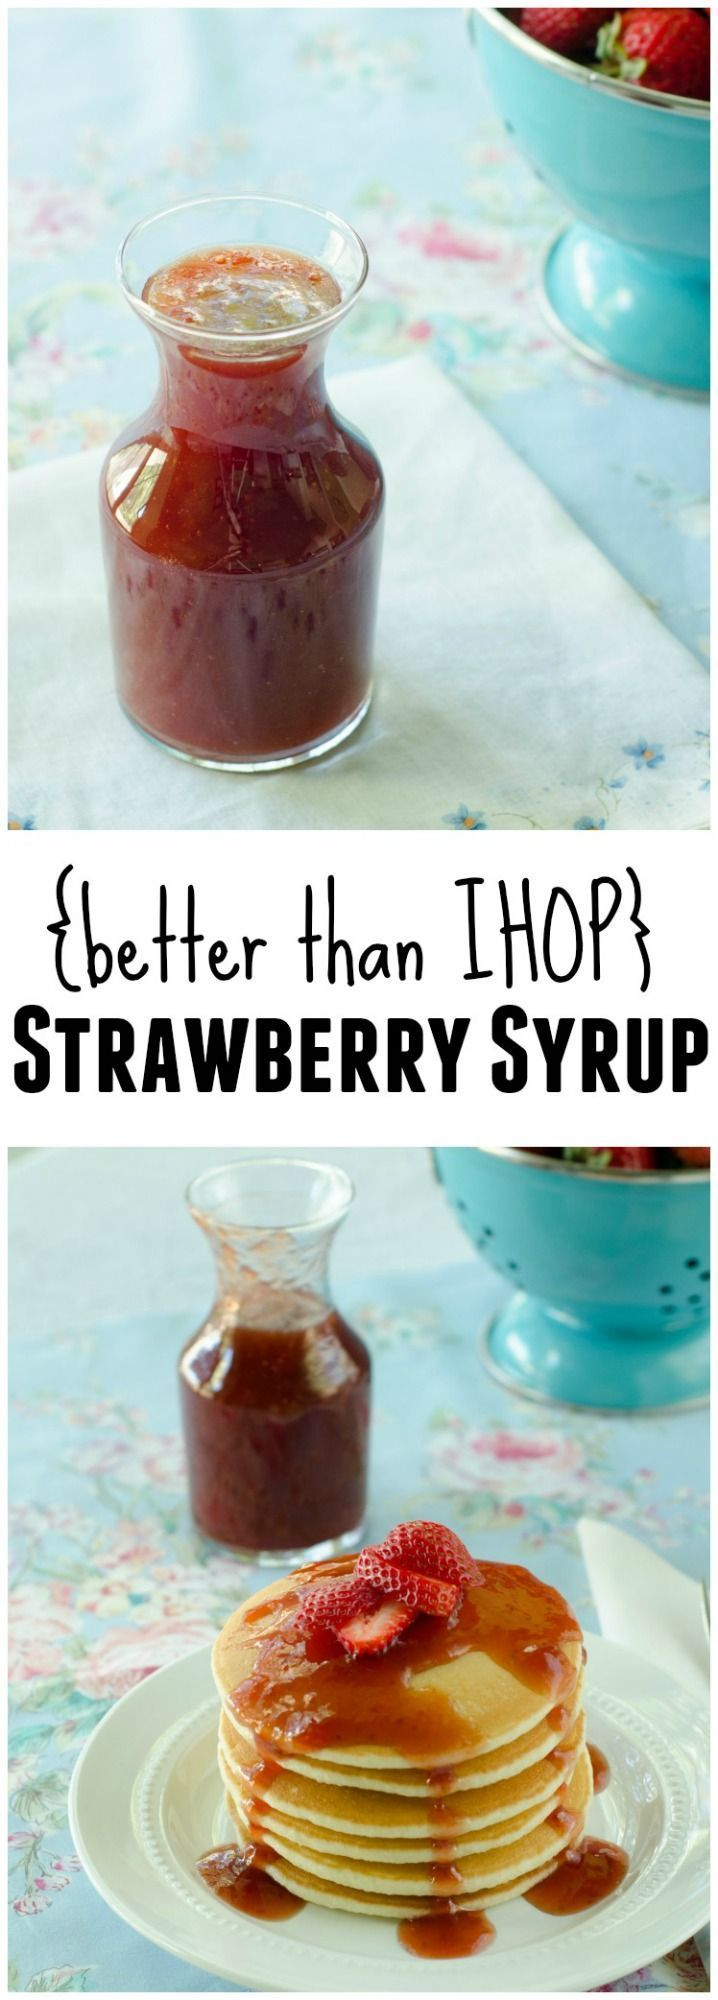 Better-than-IHOP Strawberry Syrup from LauraFuentes.com